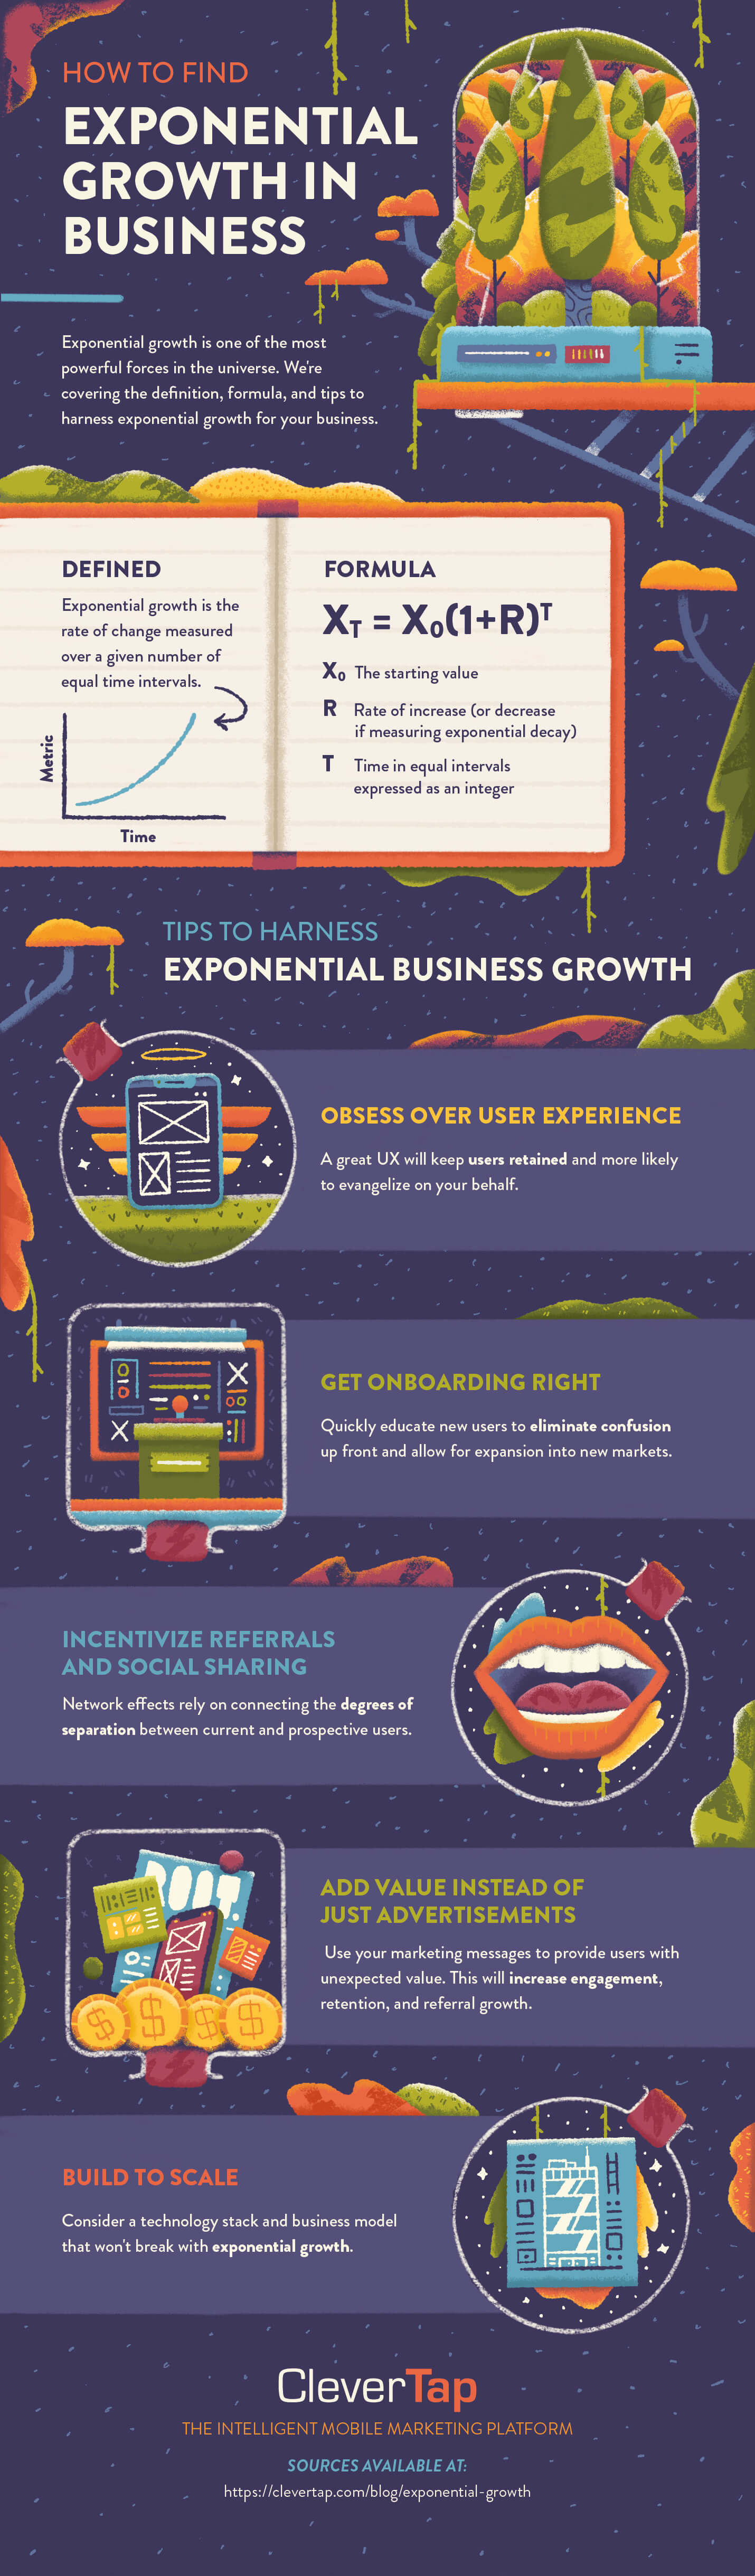 Infographic outlines the key elements of an exponential growth strategy